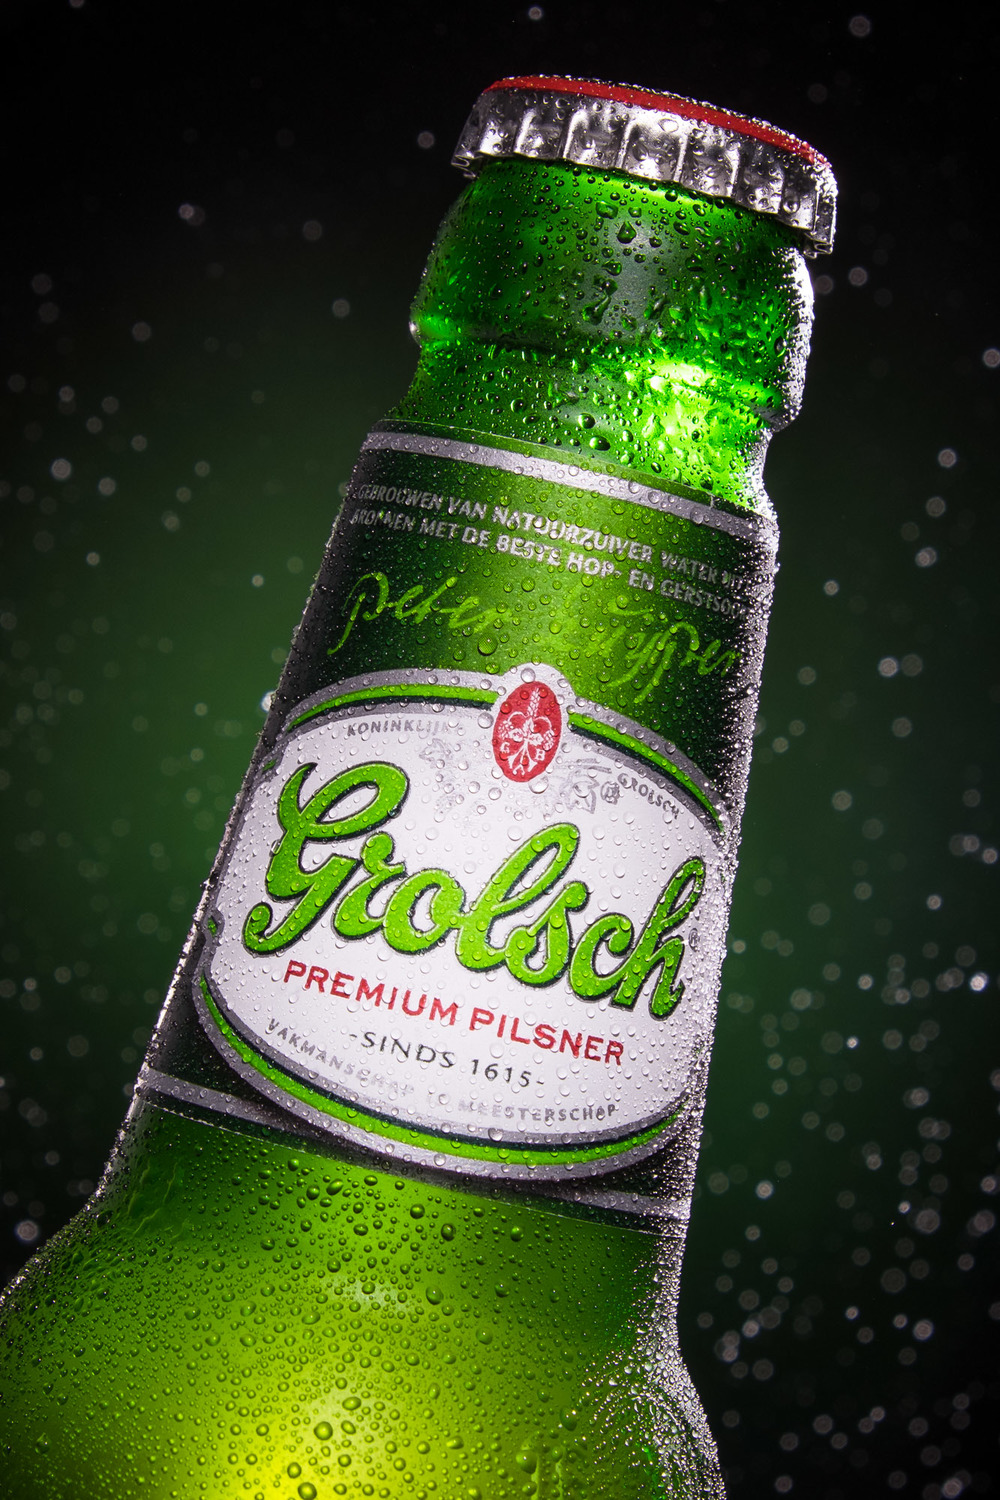 Grolsch beer bottle